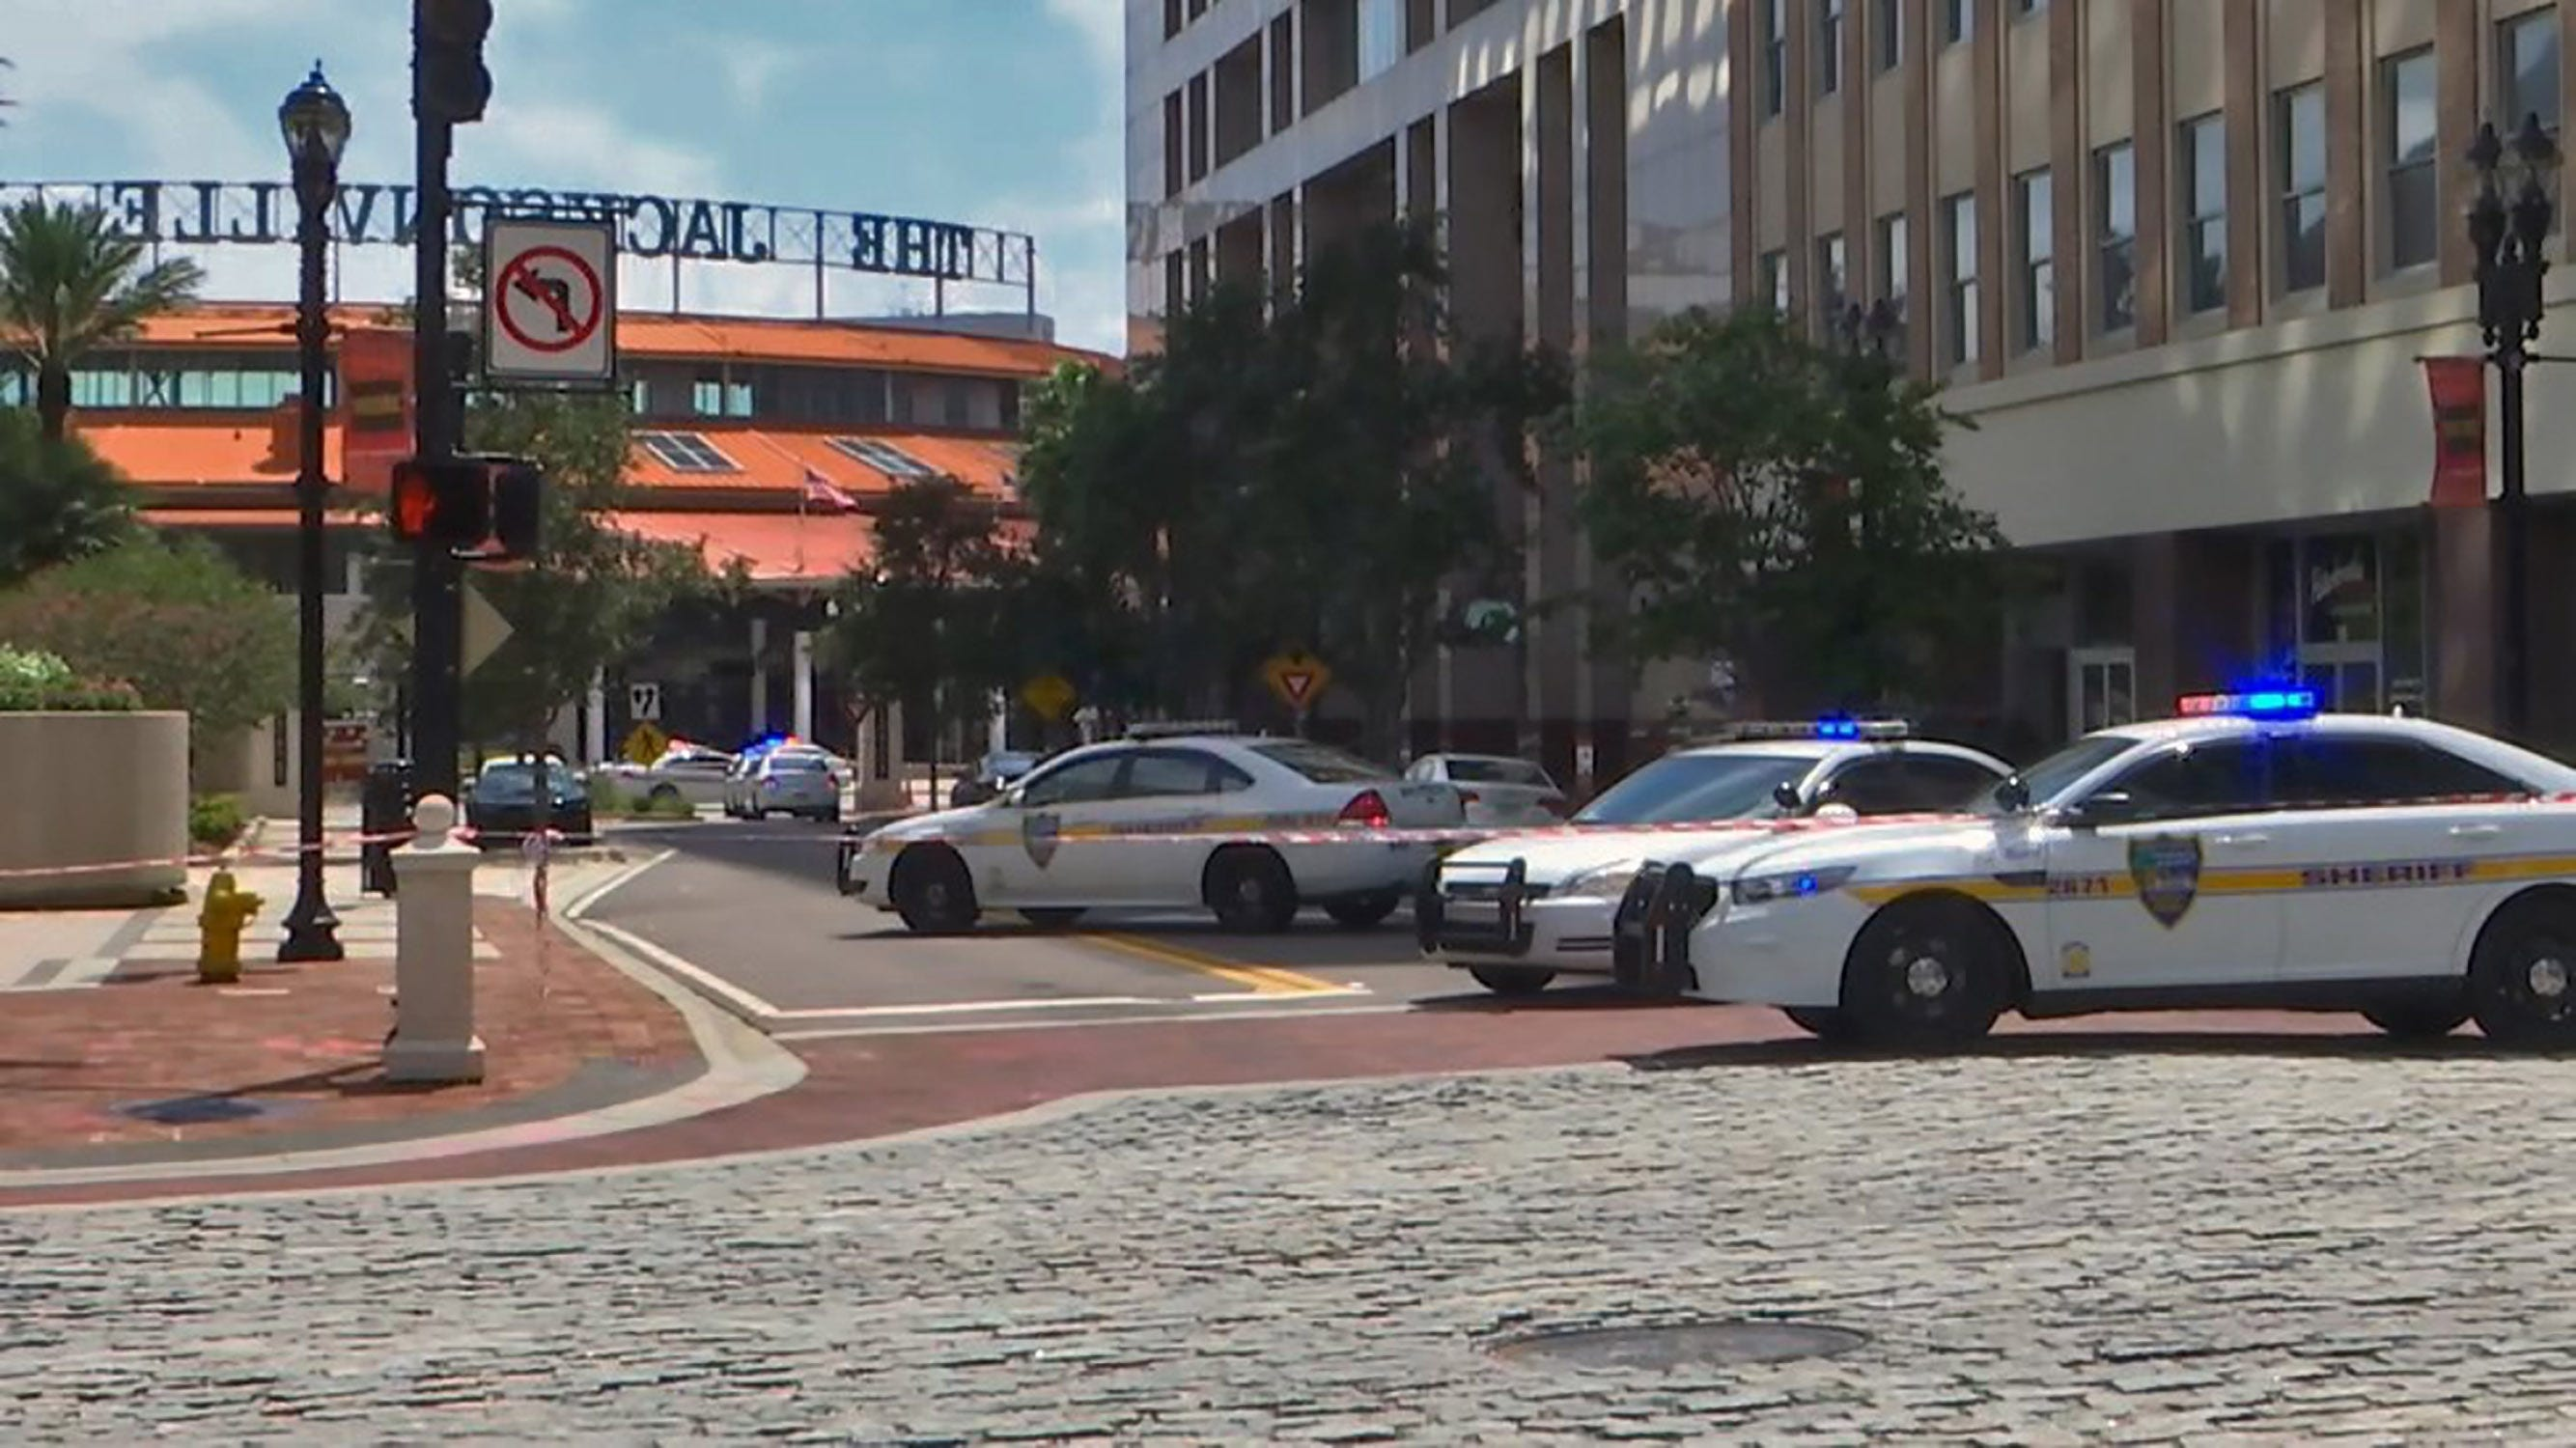 Jacksonville shooting witness: Gunman 'was just in rampage mode' inside pizza restaurant